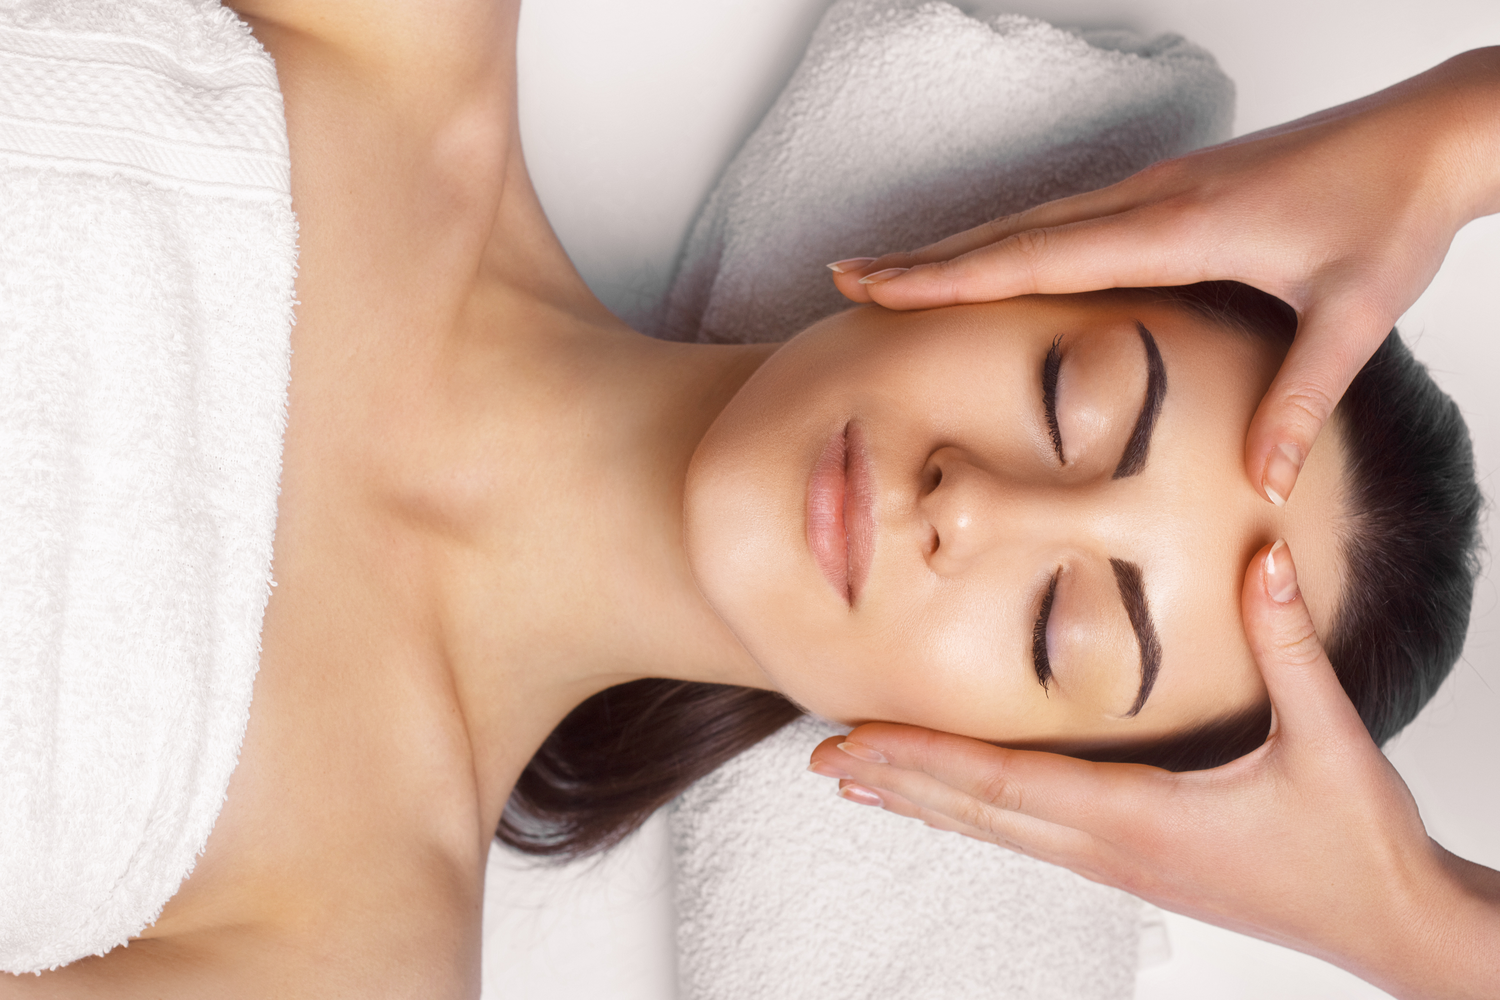 What are physical and emotional benefits of massage therapy?